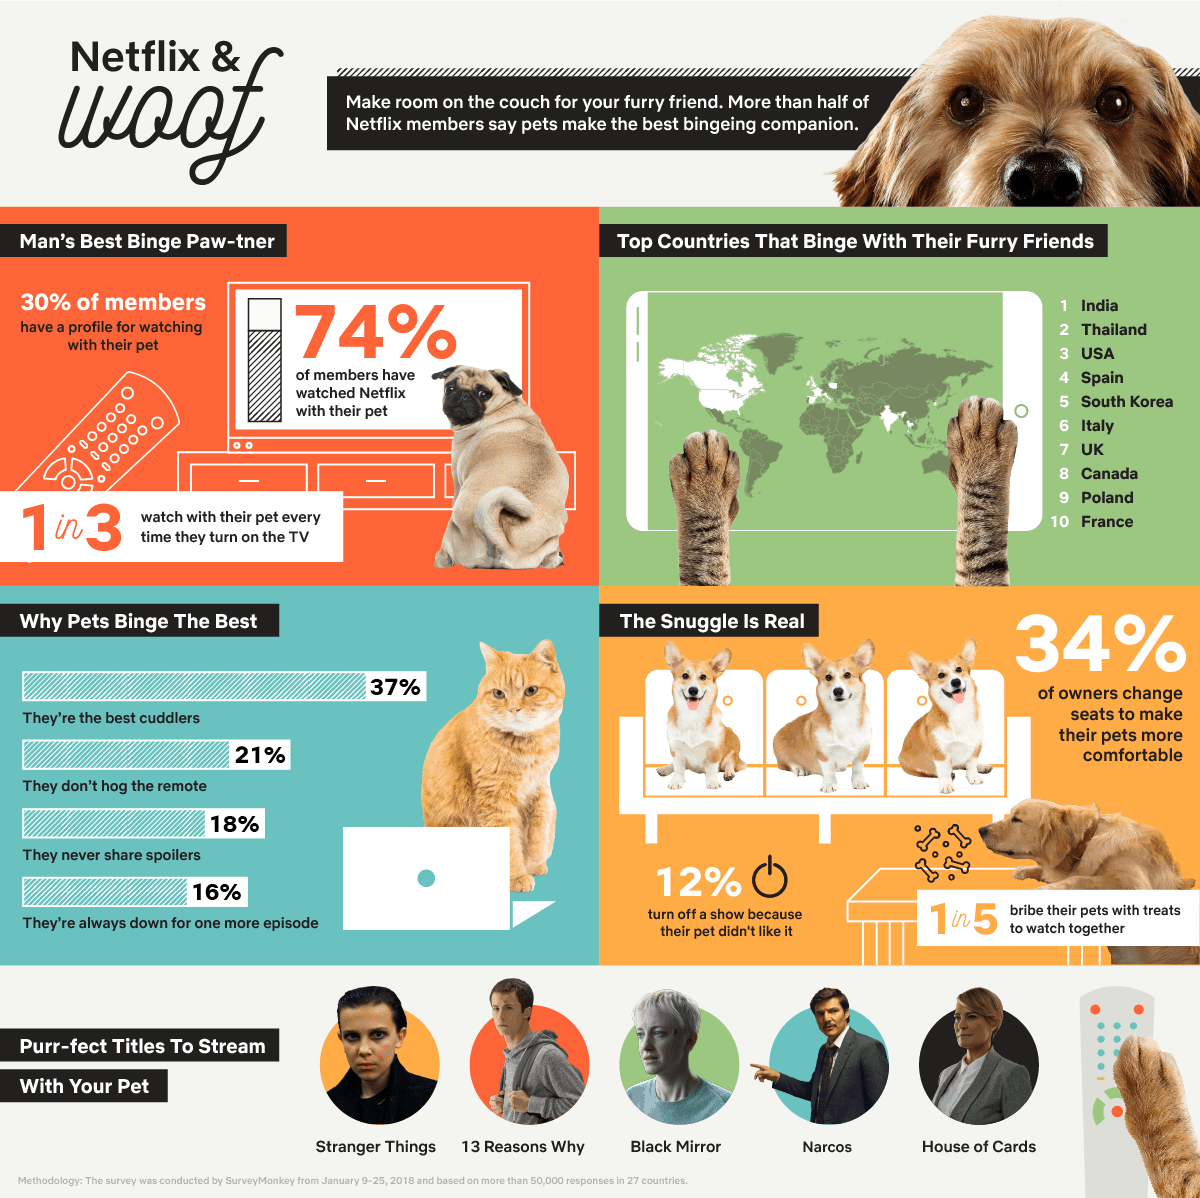 Woof_Visual-Press-Release_Global_FINAL NETFLIX & WOOF: Bingeing is for the Dogs (and Cats)